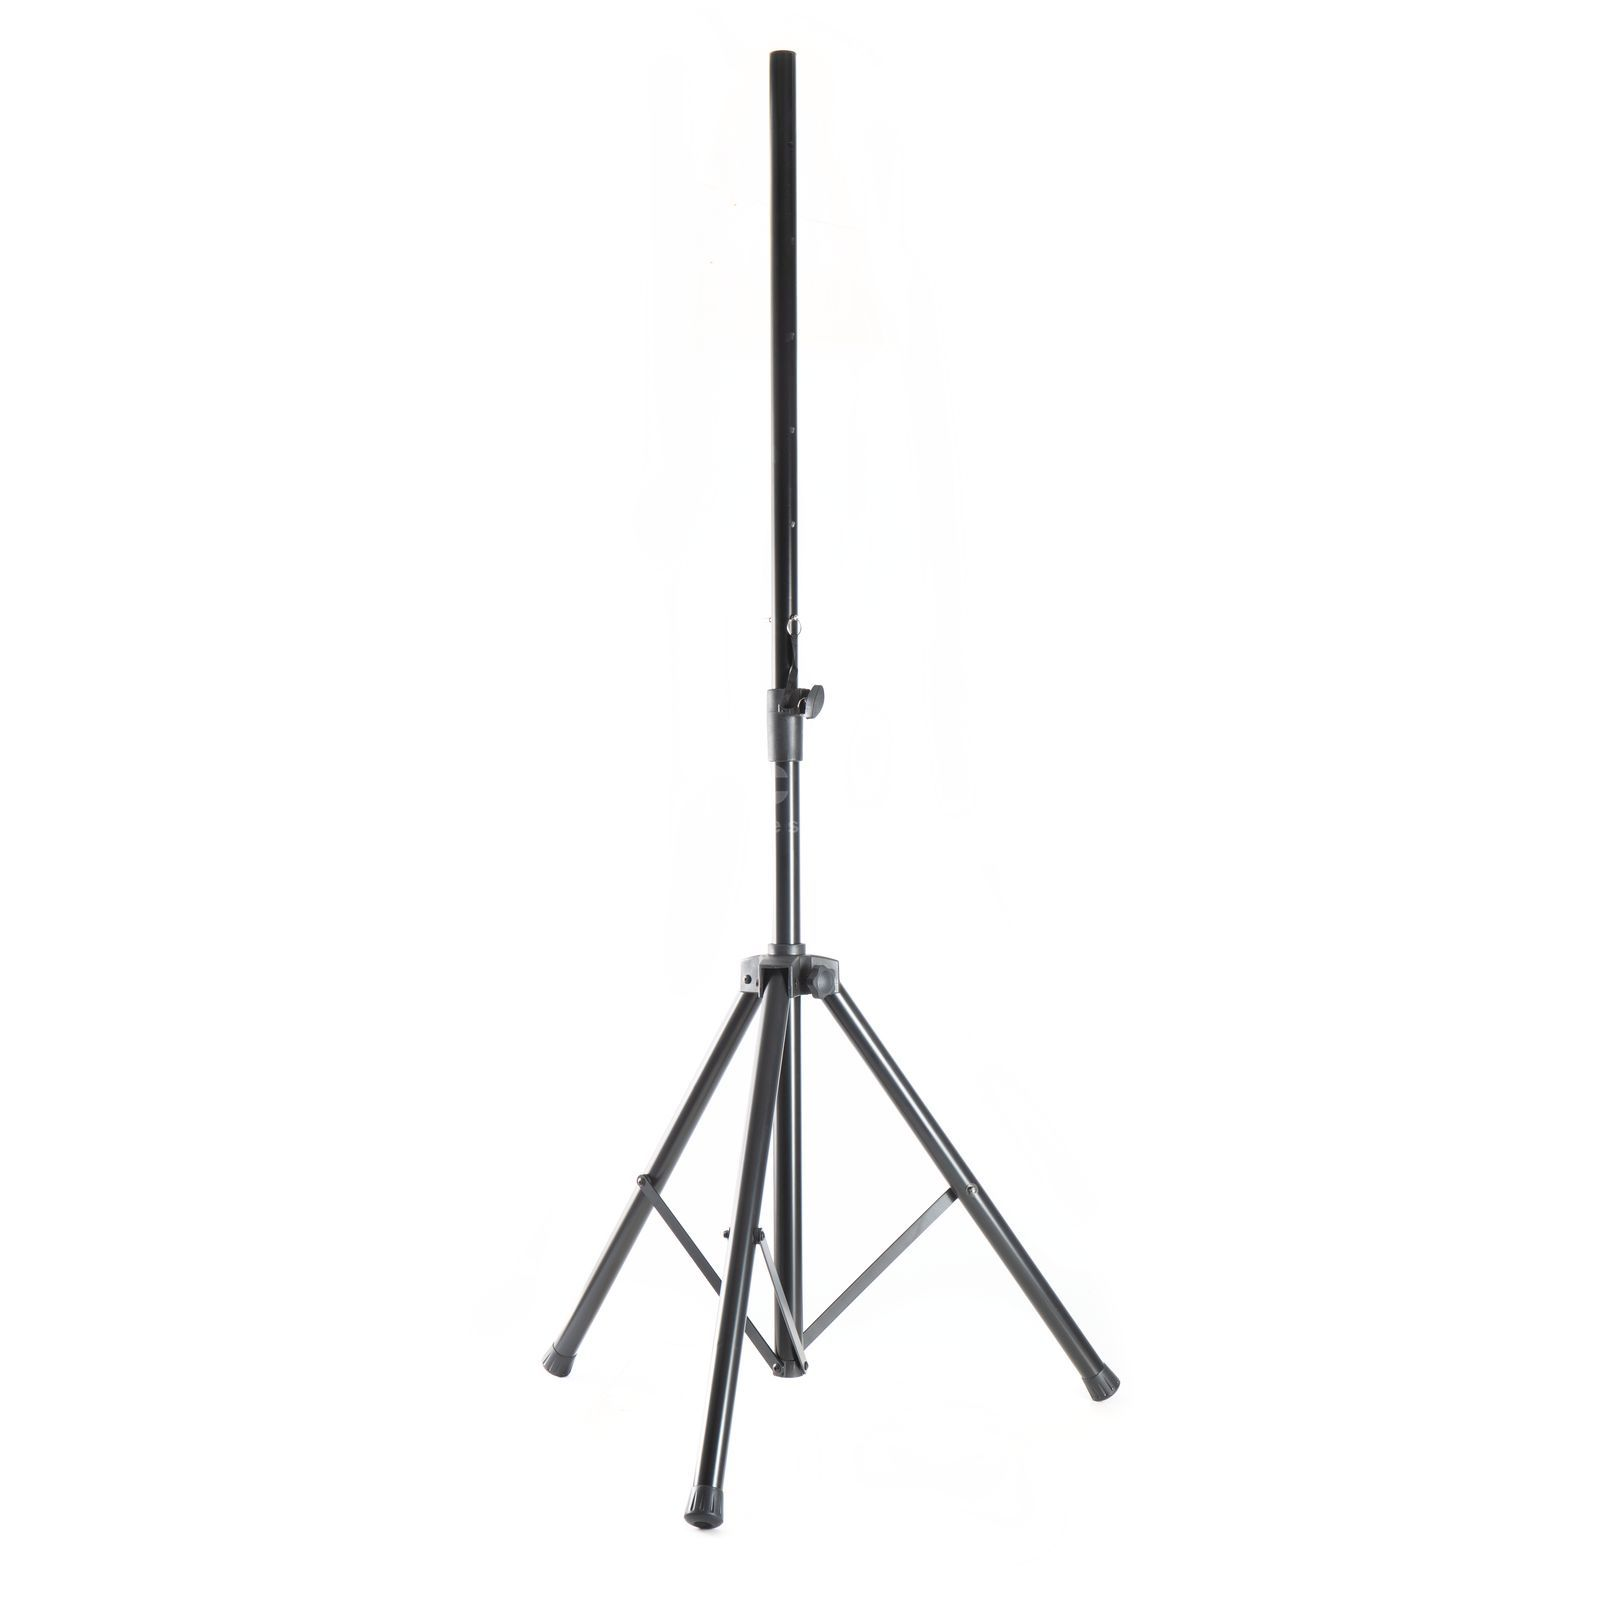 MUSIC STORE Box-6 tripod with pneumatic spring Produktbillede